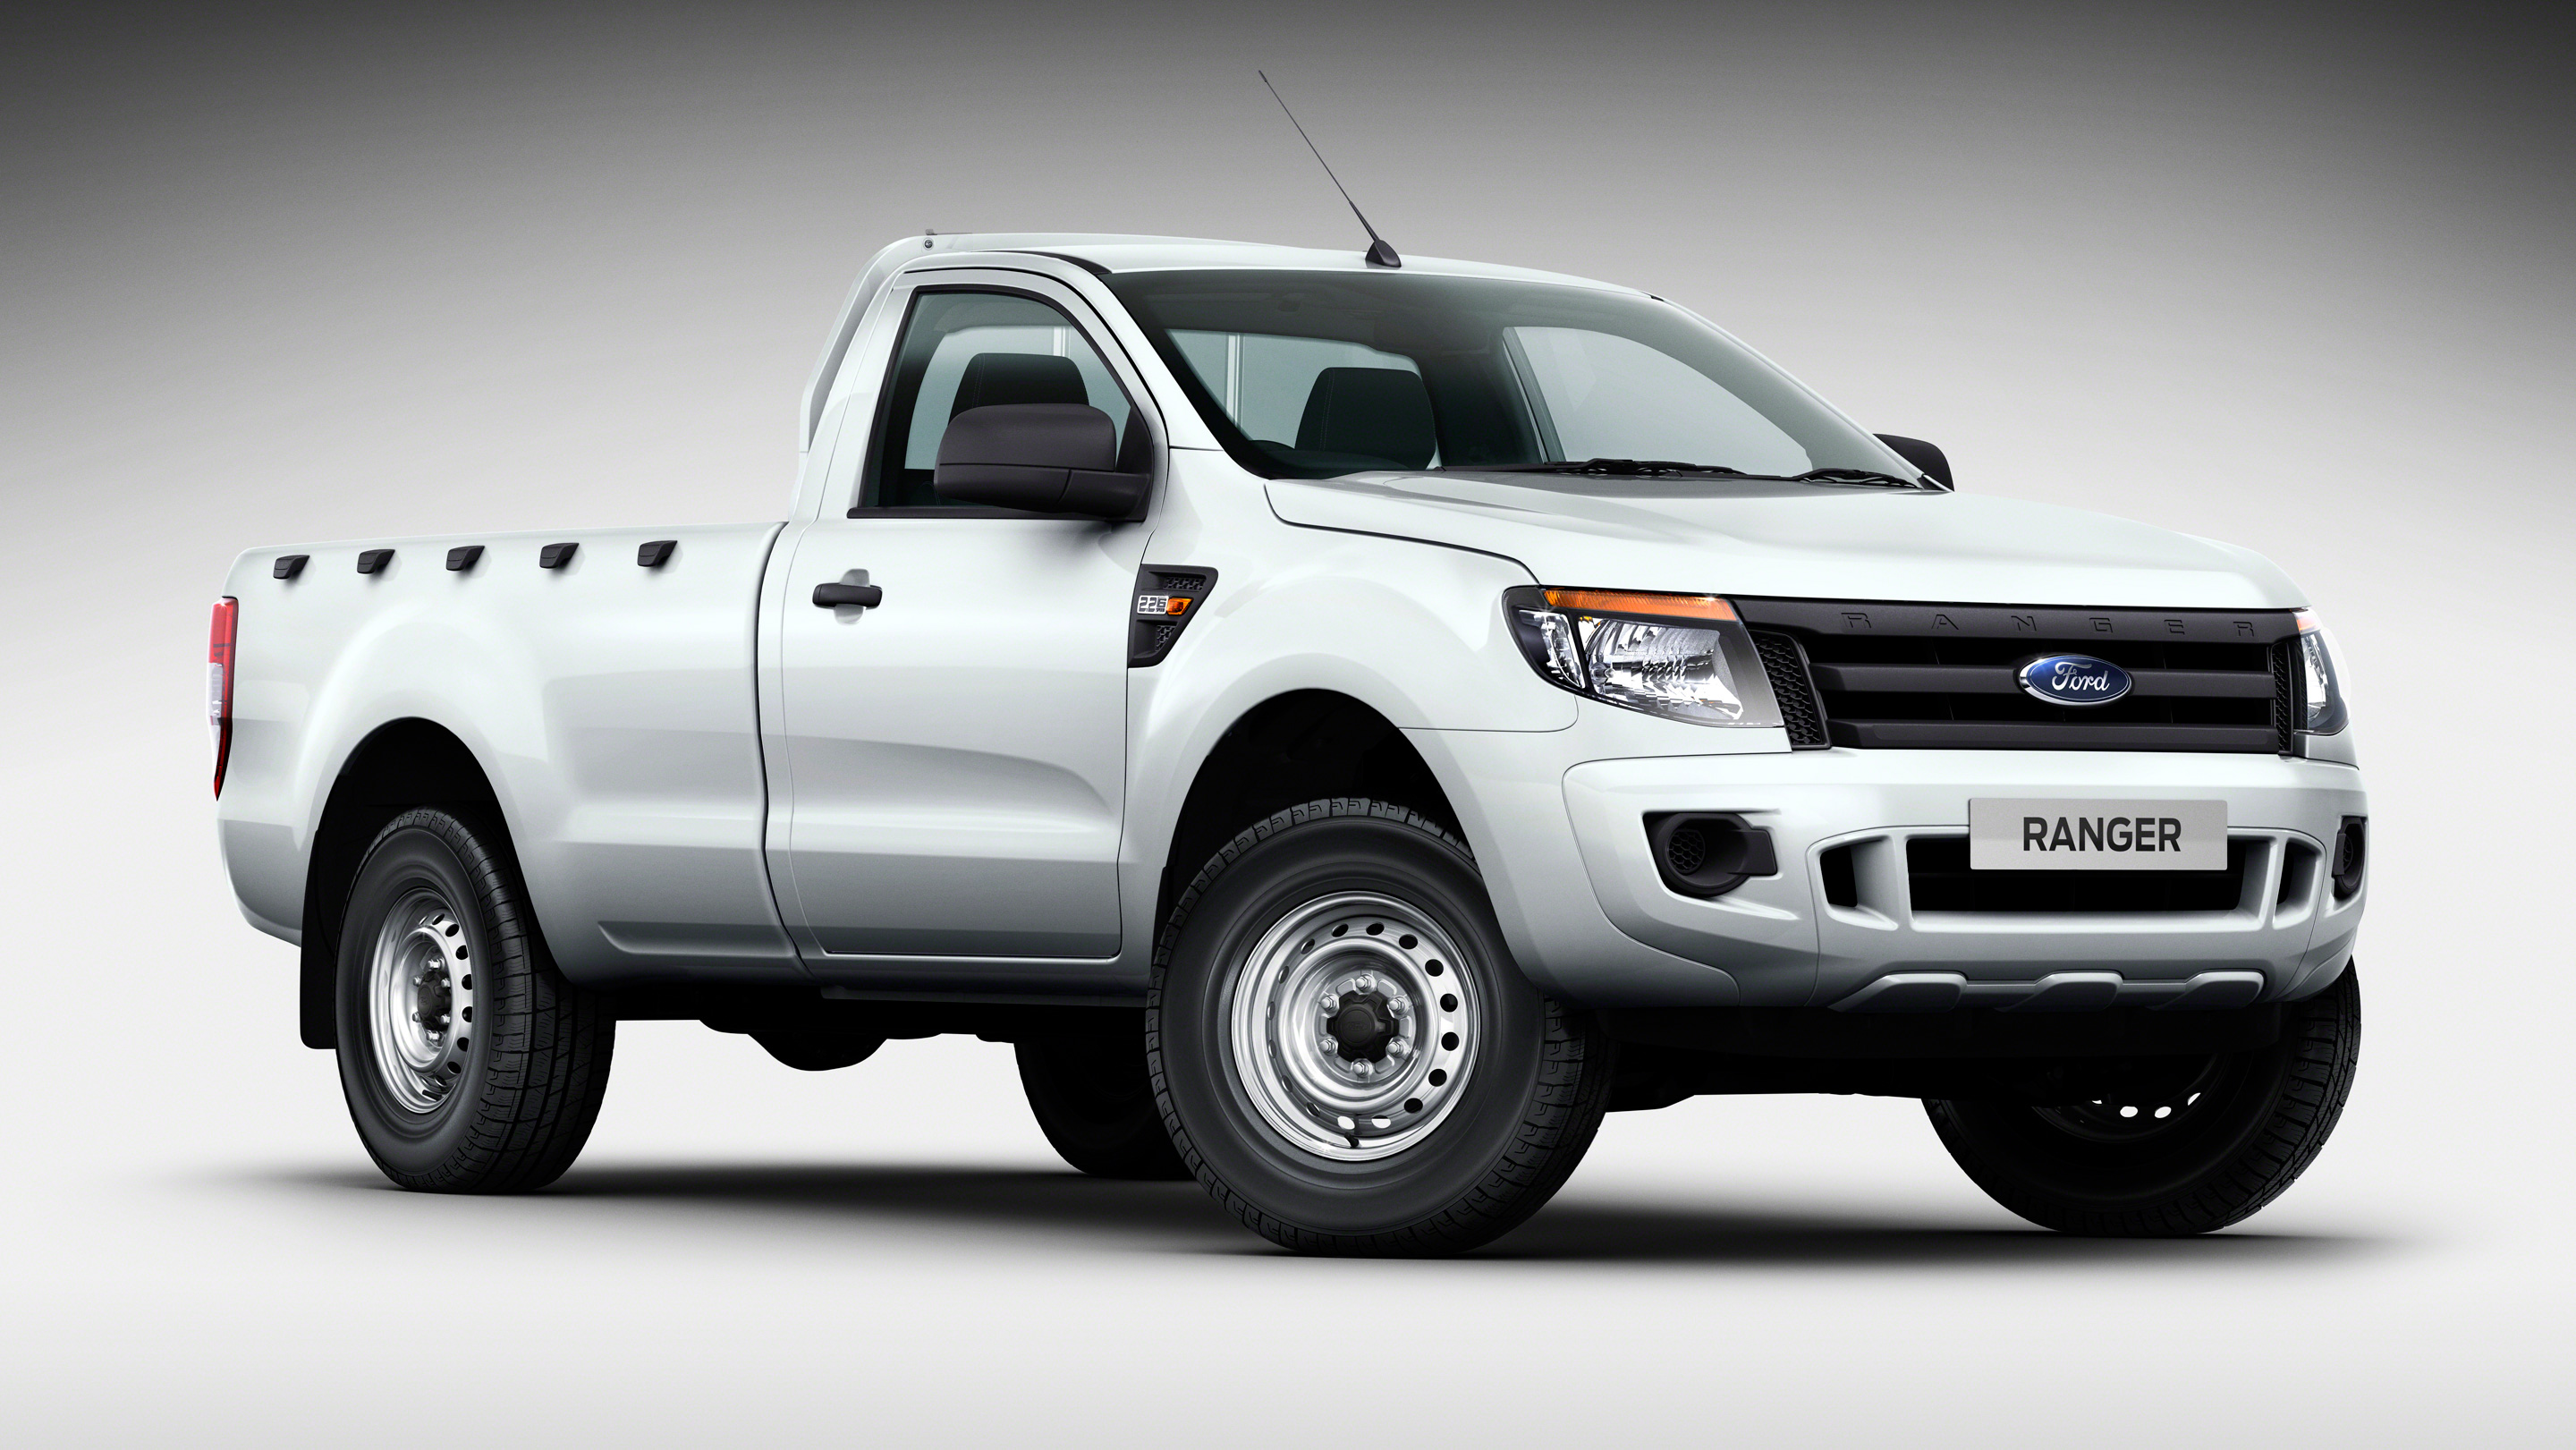 ford ranger pictures #6